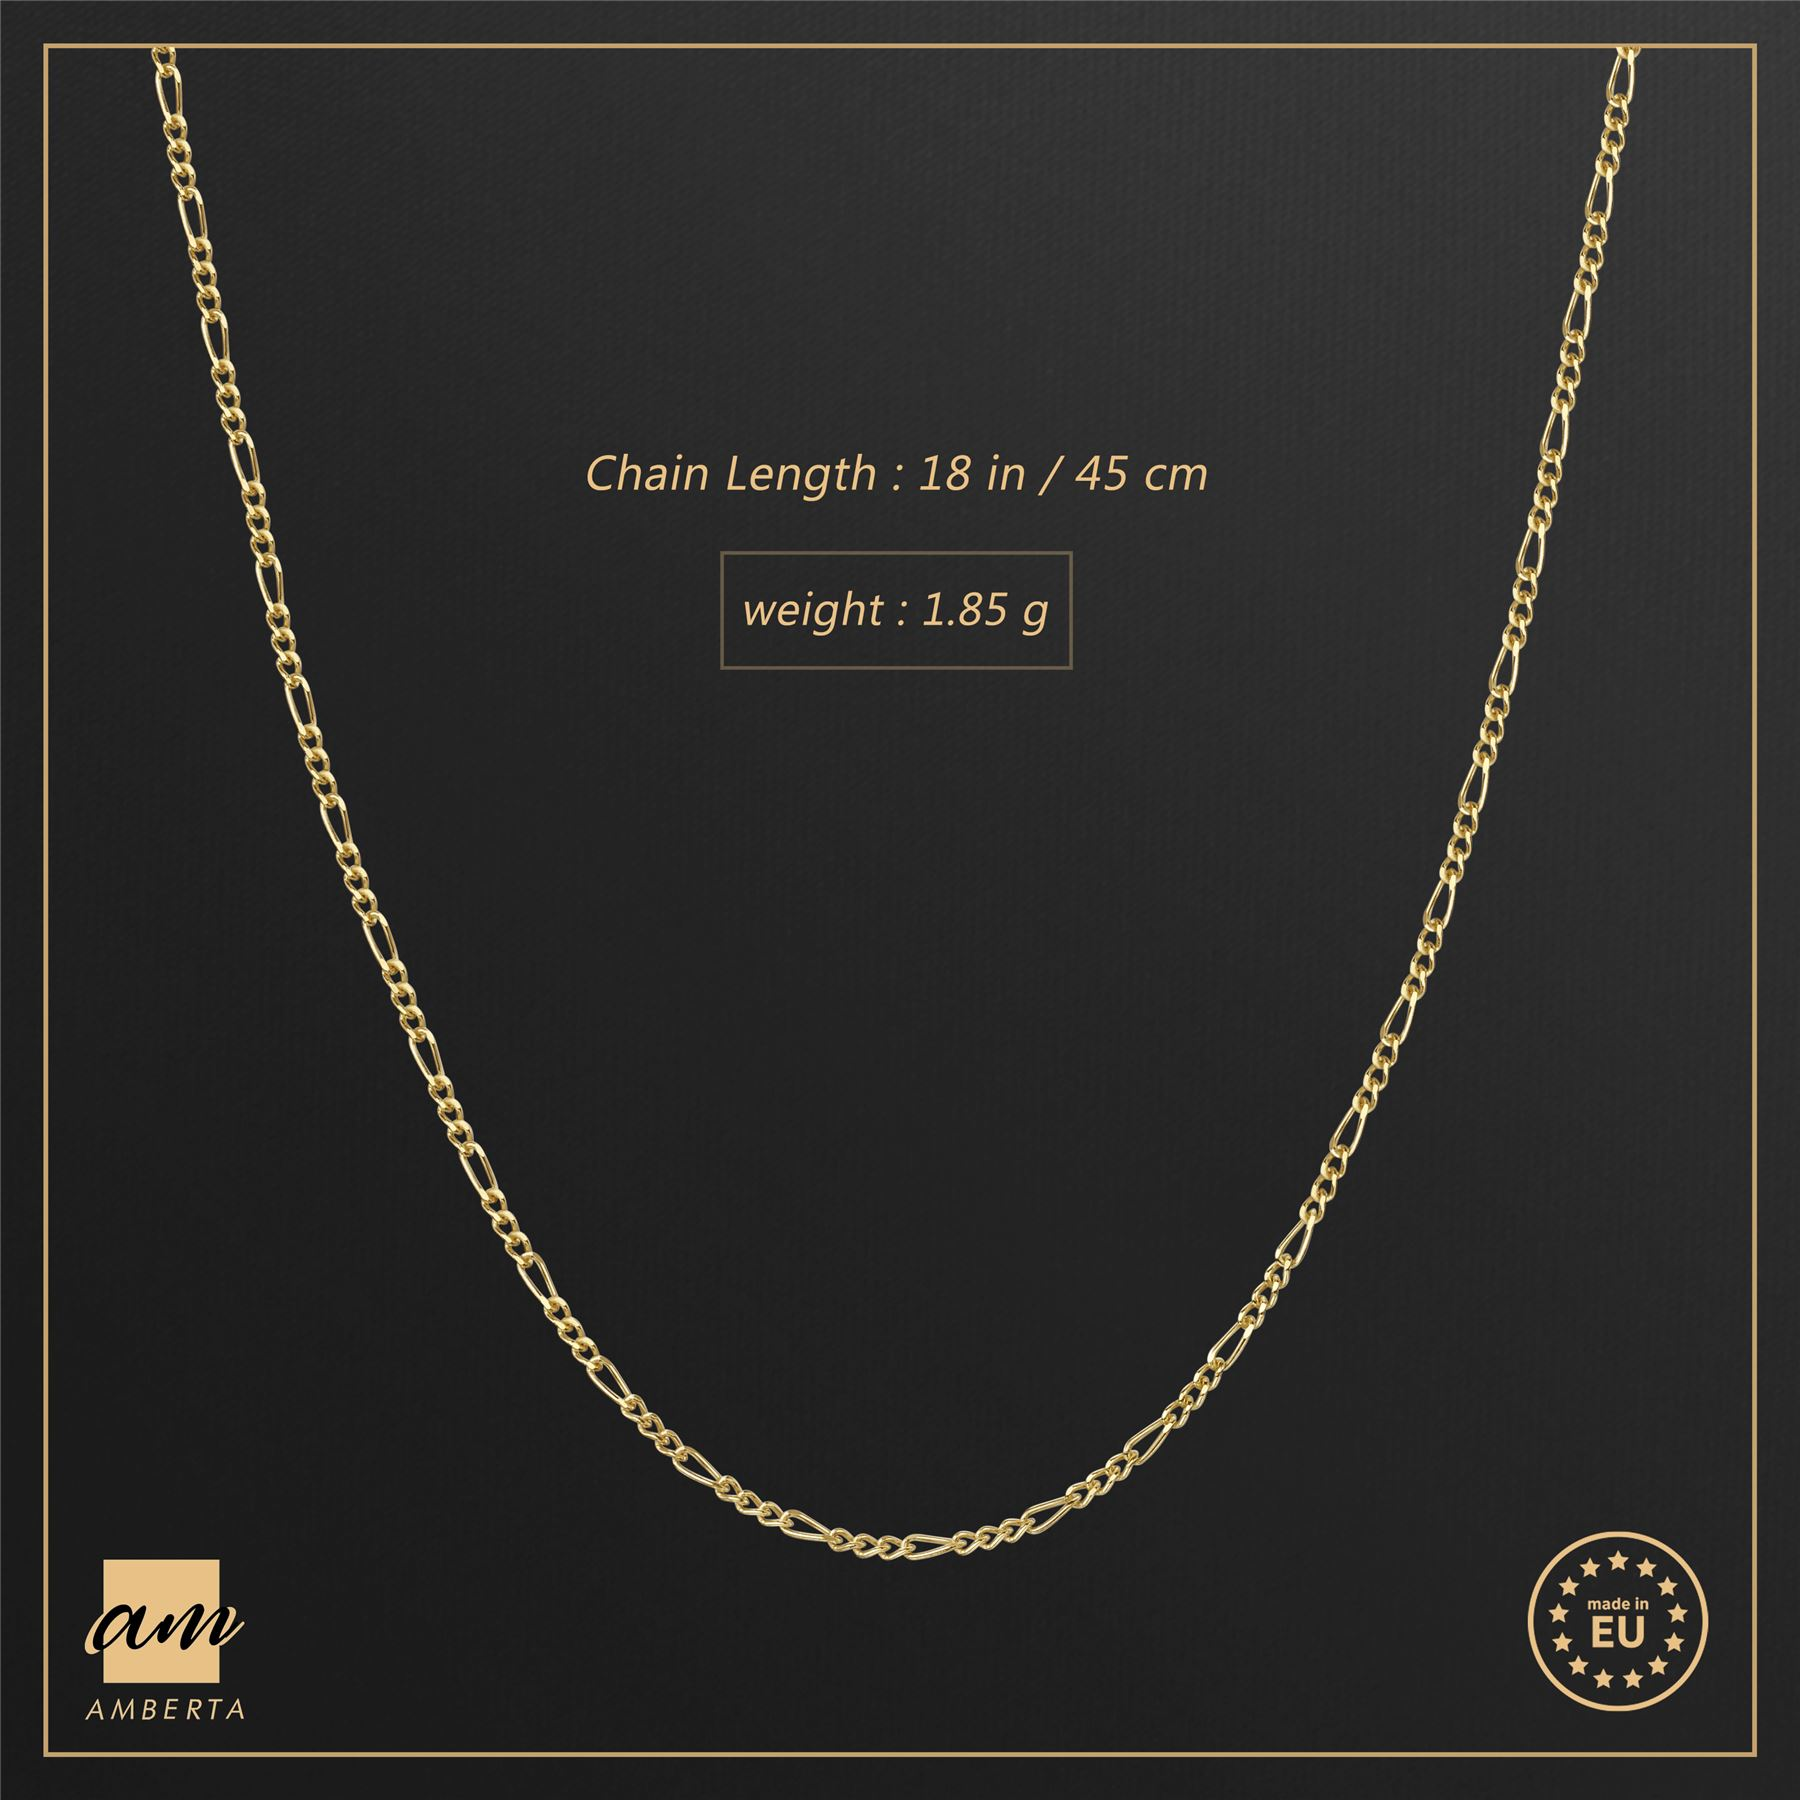 Amberta-Genuine-Gold-Plated-on-Real-925-Sterling-Silver-Necklace-Chain-Italy 縮圖 32